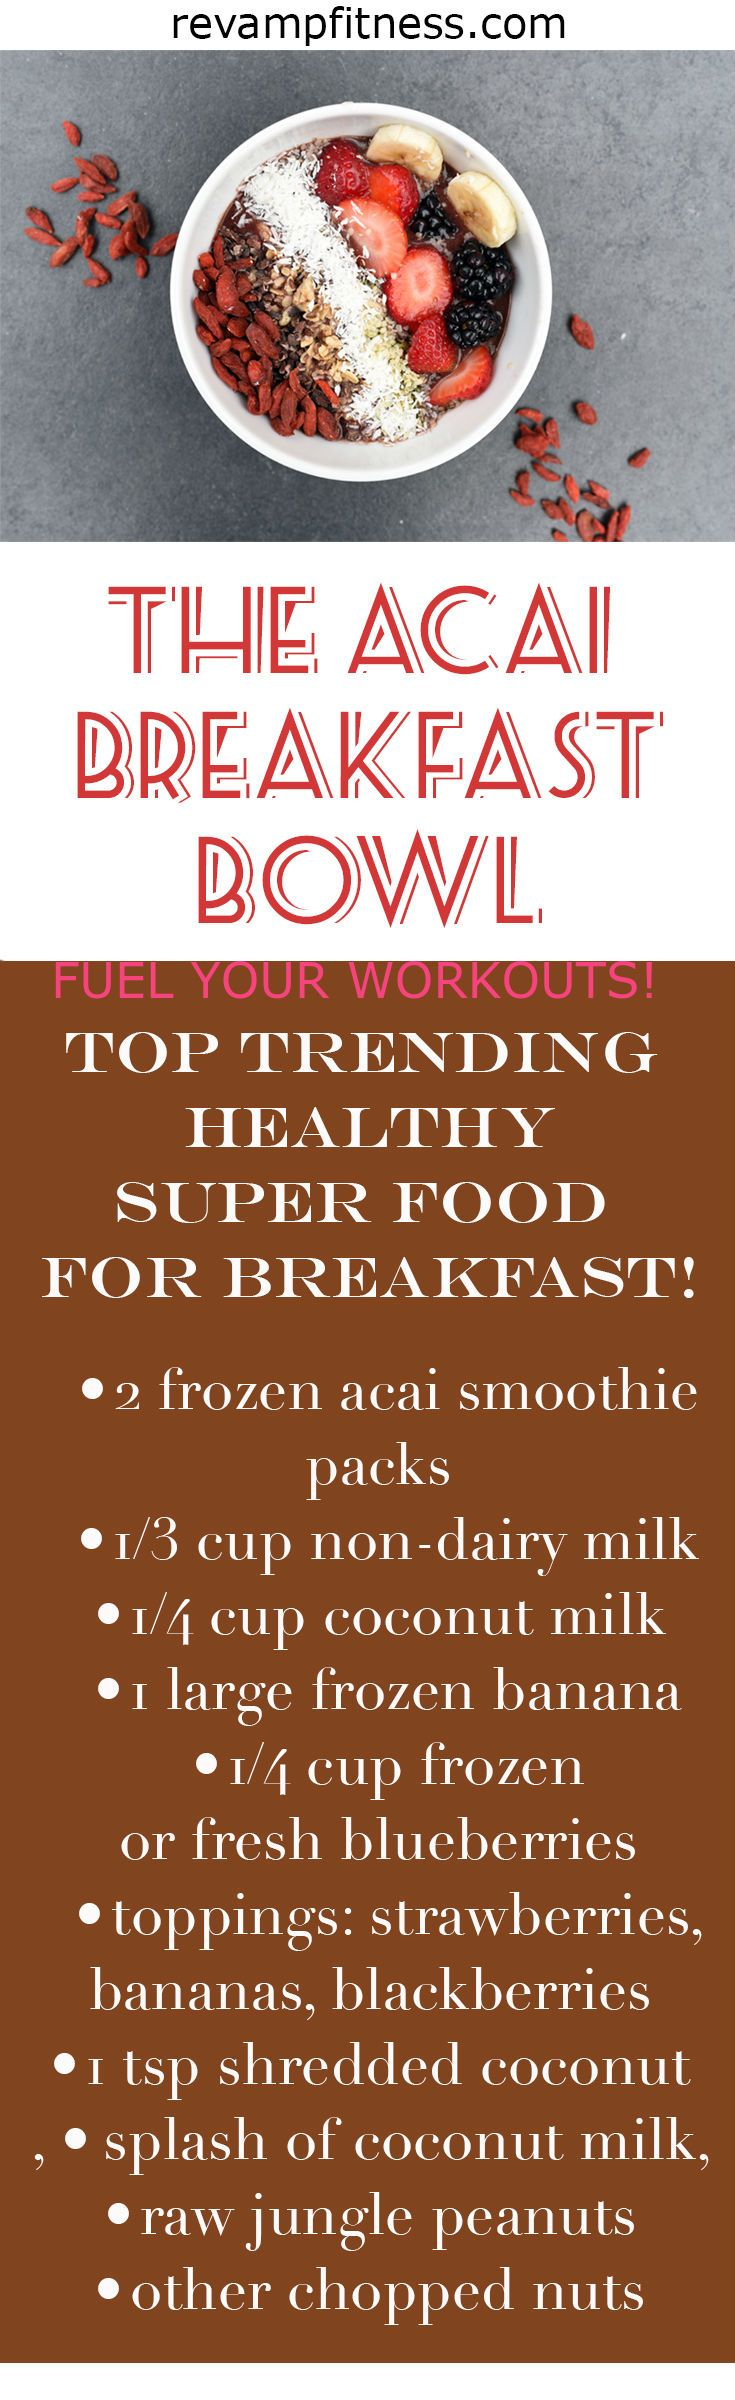 You'll love this! Top trending health and fitness recipe! Easy to create. Great for fueling before and recovering after your workouts. Many health benefits in this breakfast super food! VISIT http://revampfitness.com for more great recipes! #breakfast #fitfood #skinnyrecipes